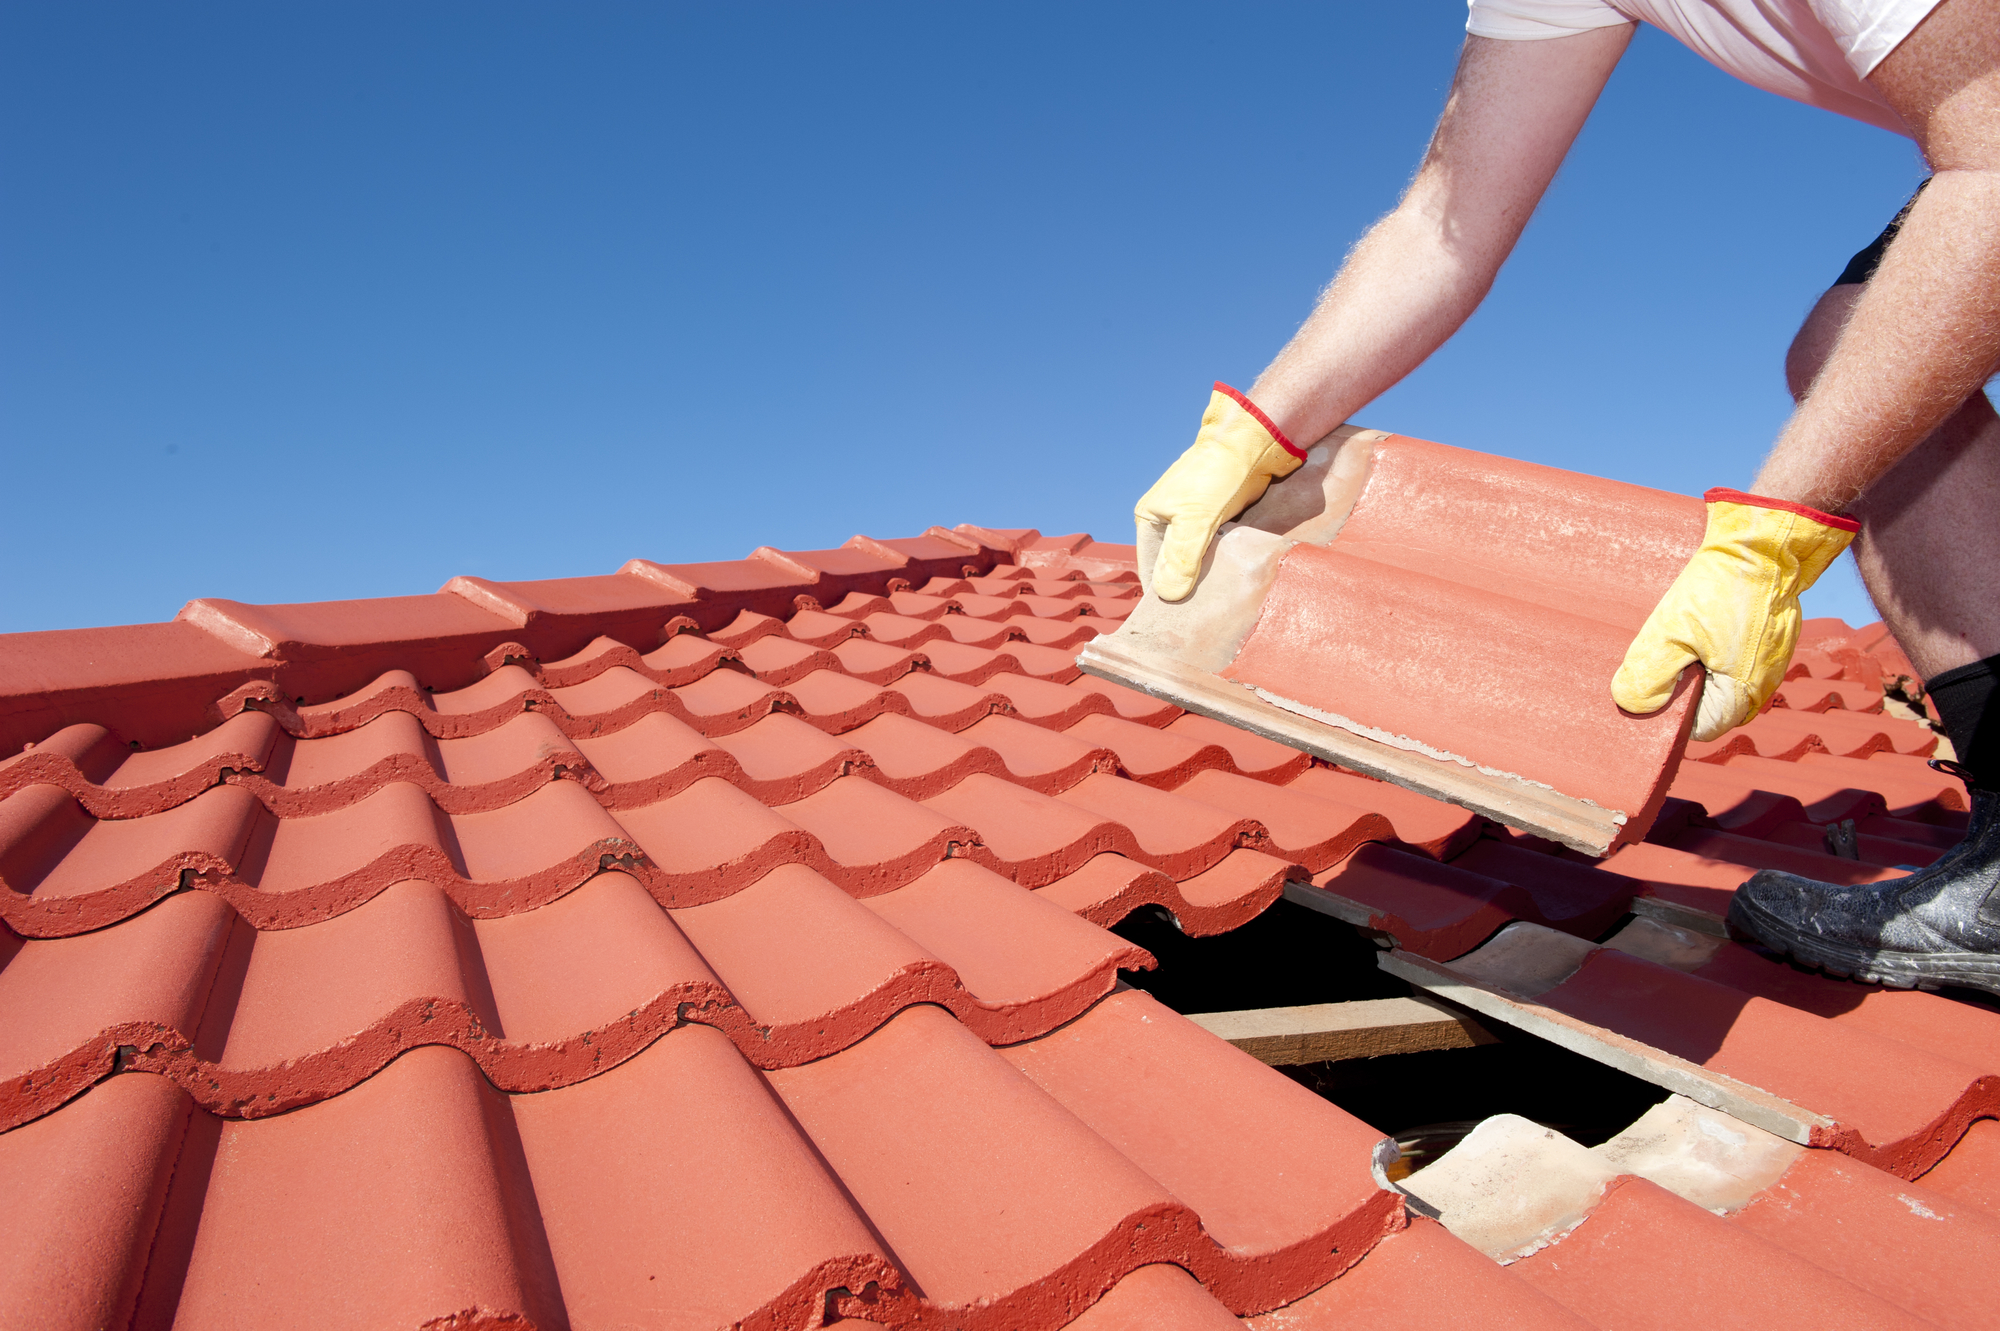 Roofing contractors applying shingles onto roof